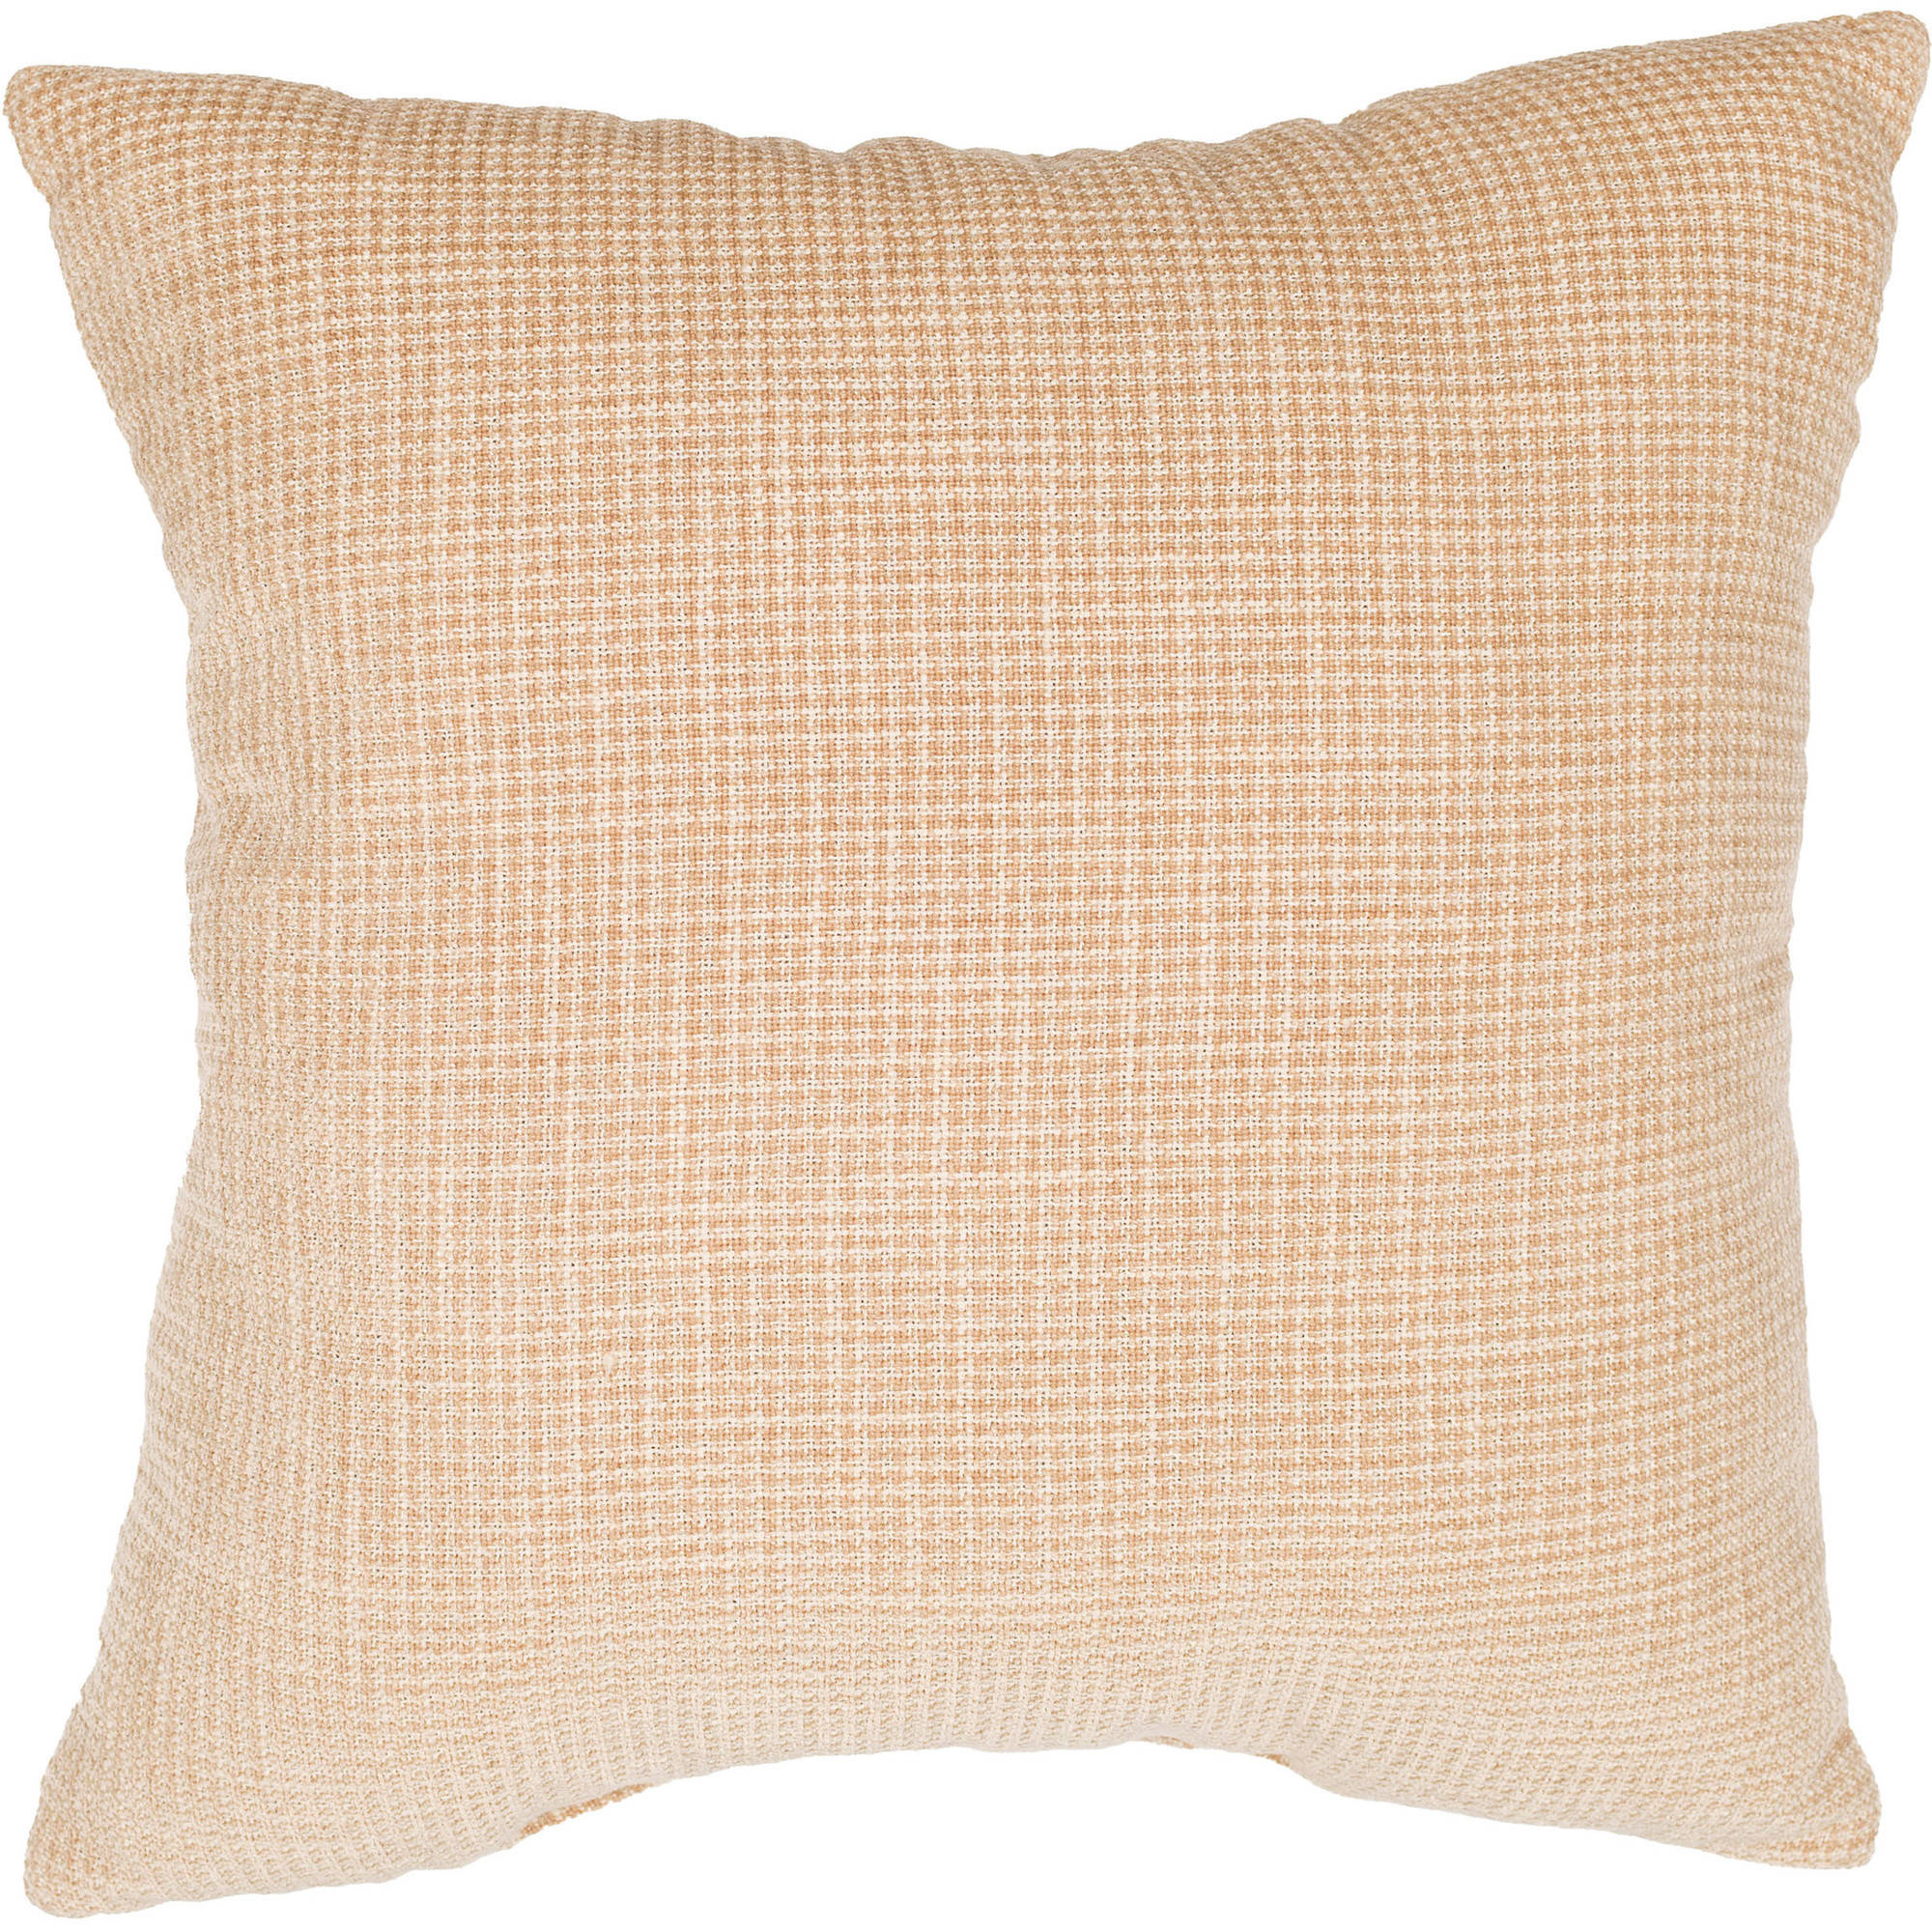 "Better Homes and Gardens 18"" x 18"" Tweed Pillow, Straw"